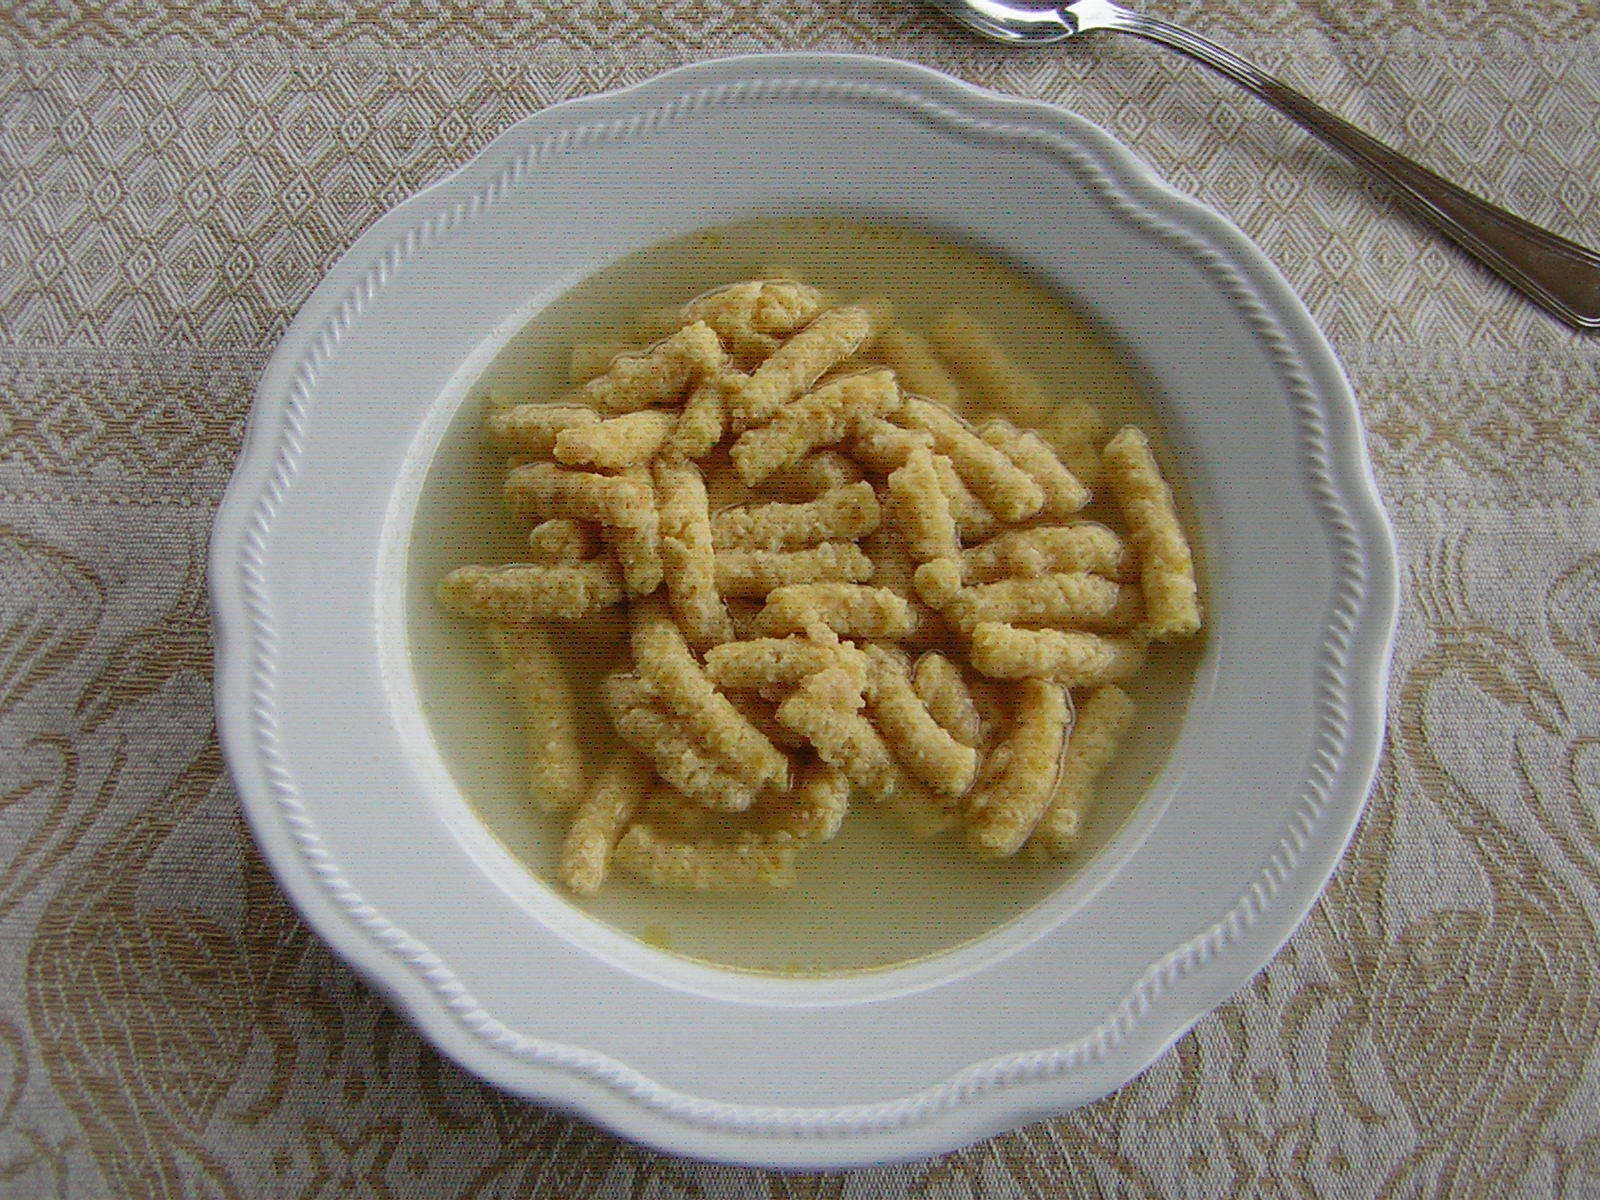 Passatelli in brodo di gallina